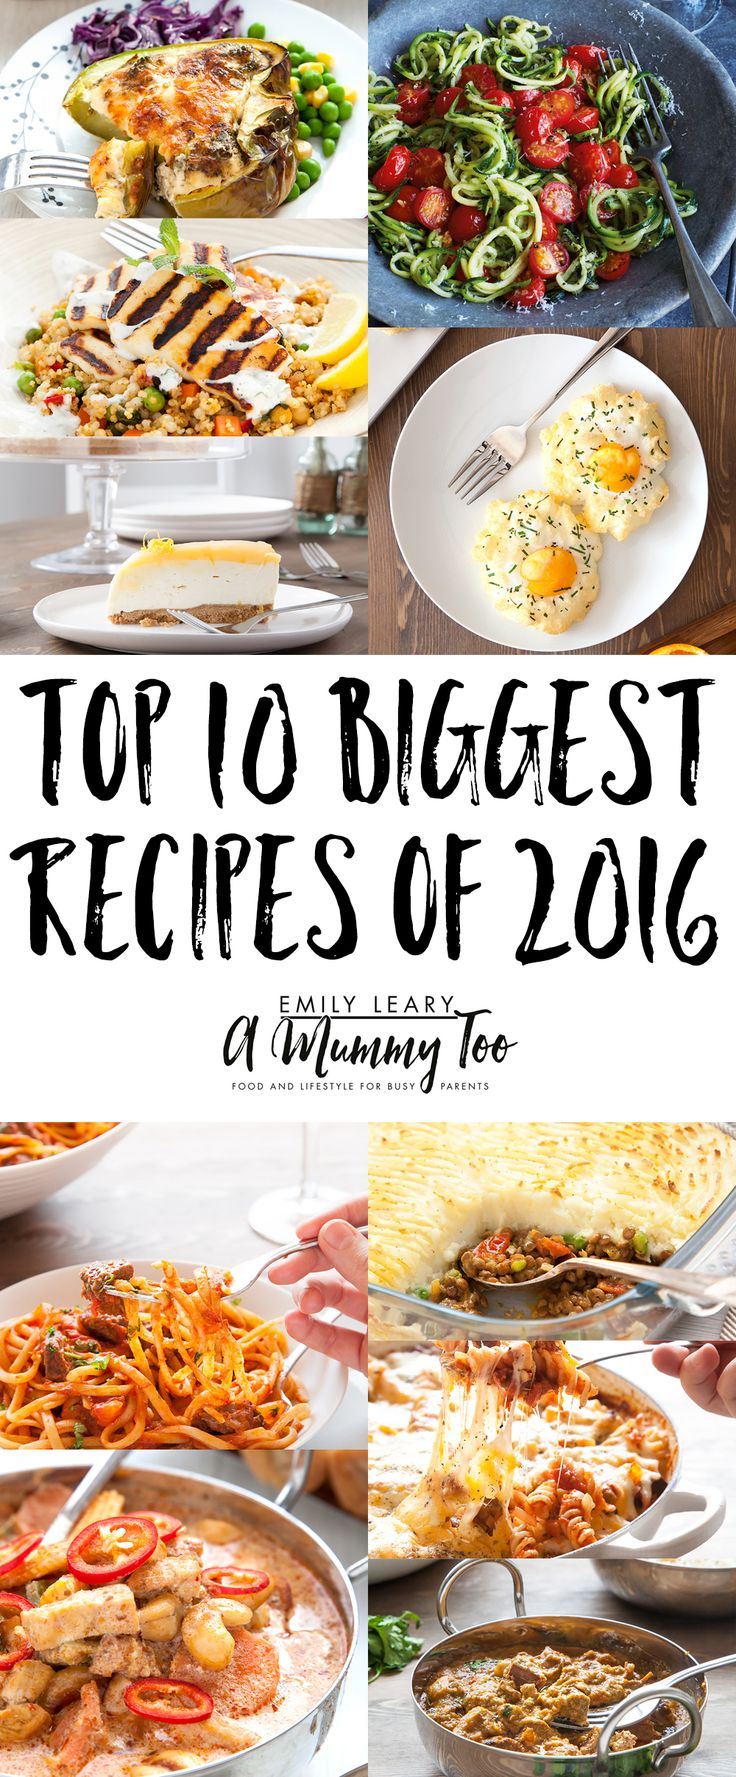 Best 20+ Down for everyone ideas on Pinterest   Taco love, You ve ...